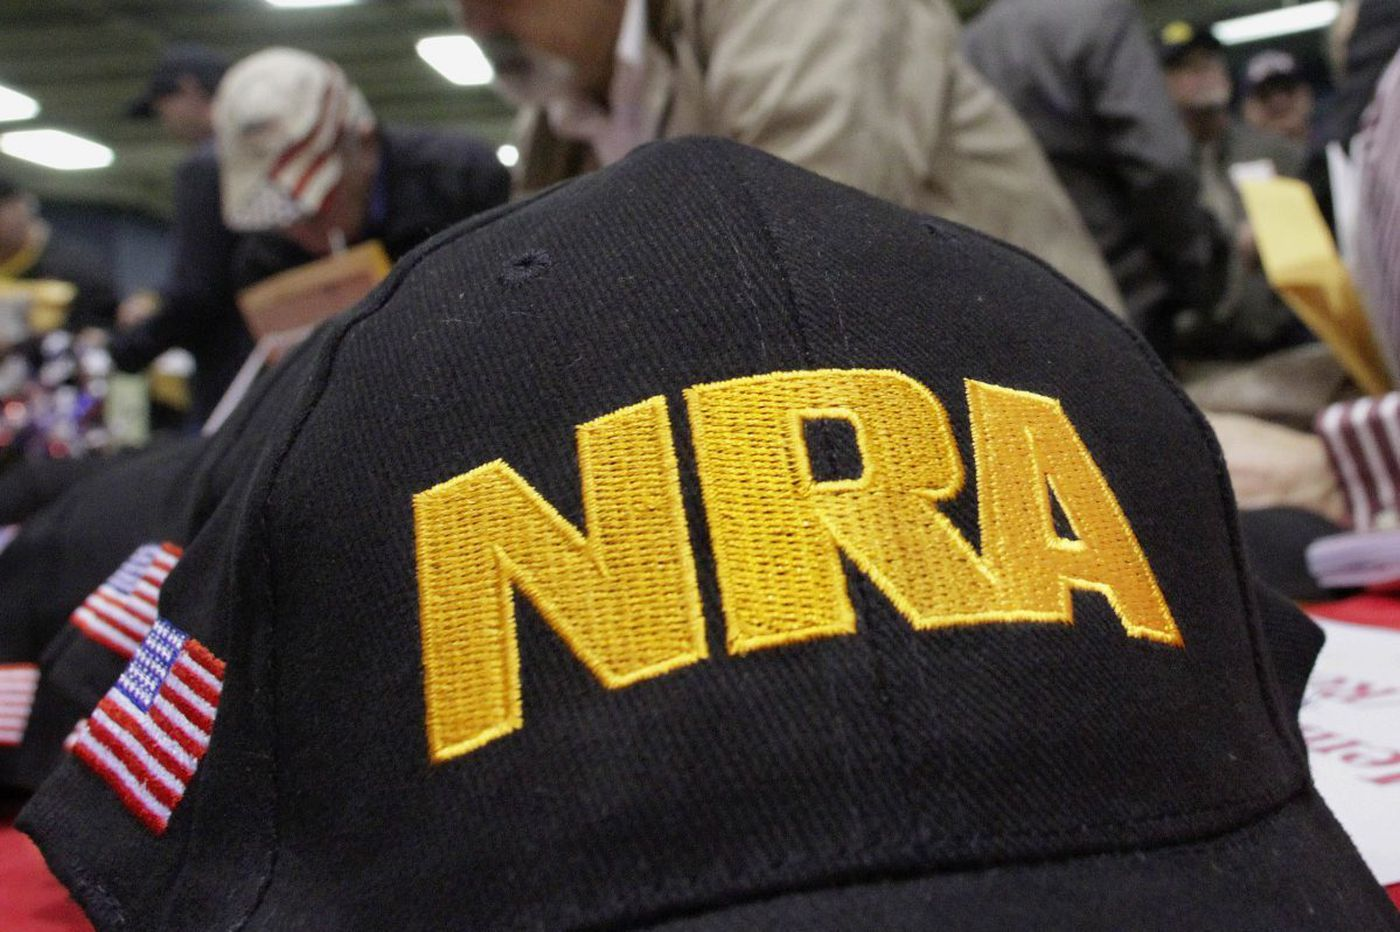 NRA responds to boycott movement after United and Delta cut ties